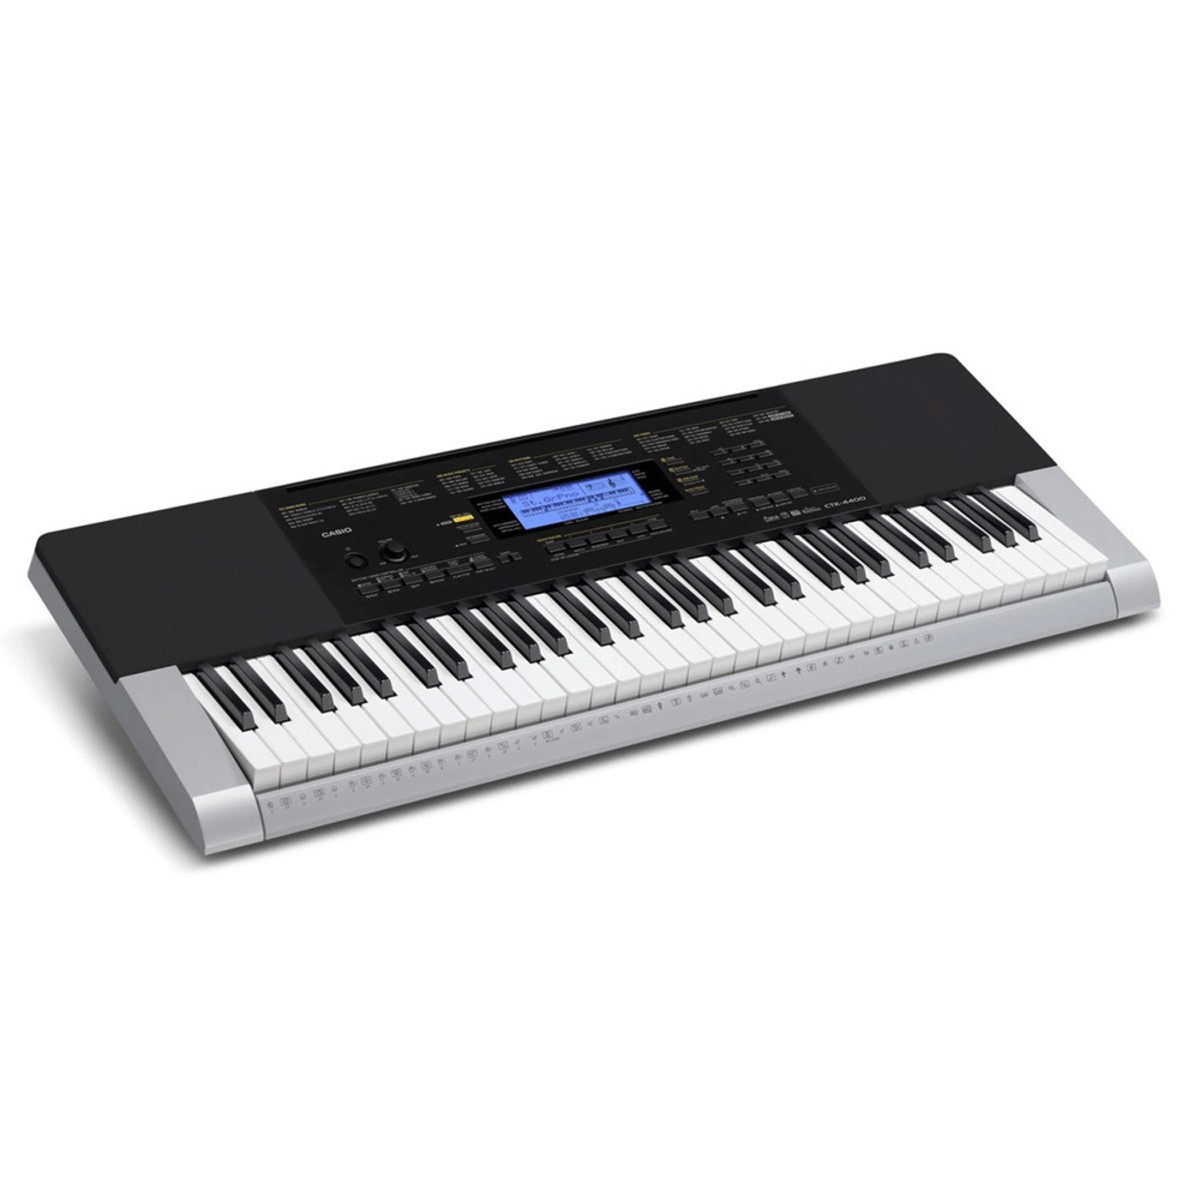 Casio Ctk 4400 Portable Keyboard Package At Gear4music